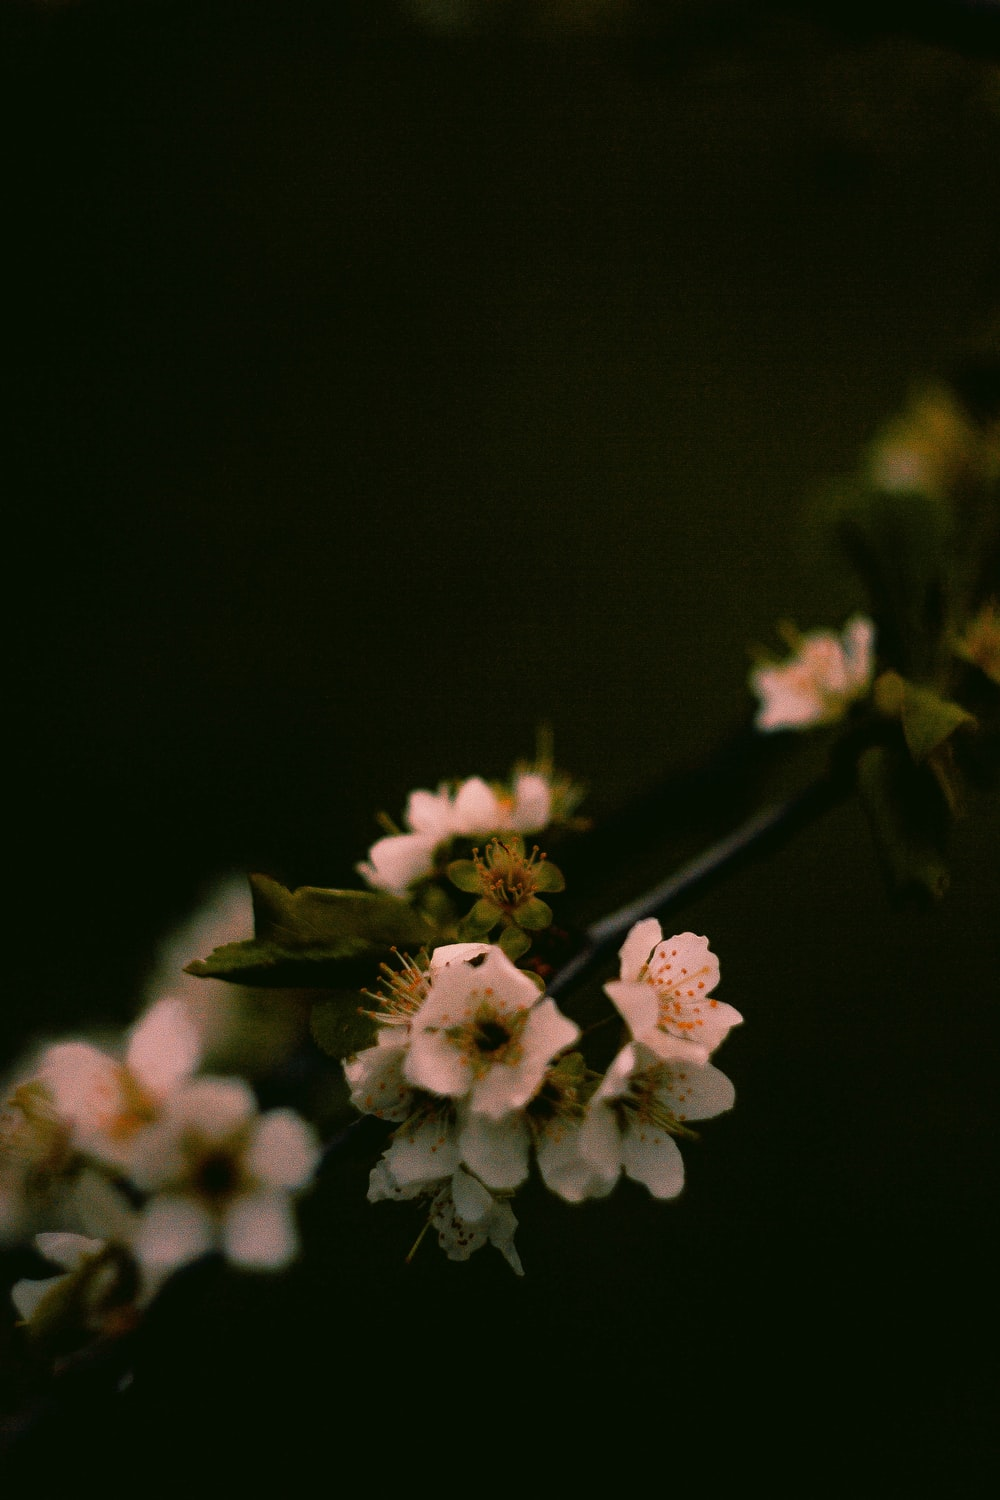 white and pink cherry blossom in bloom